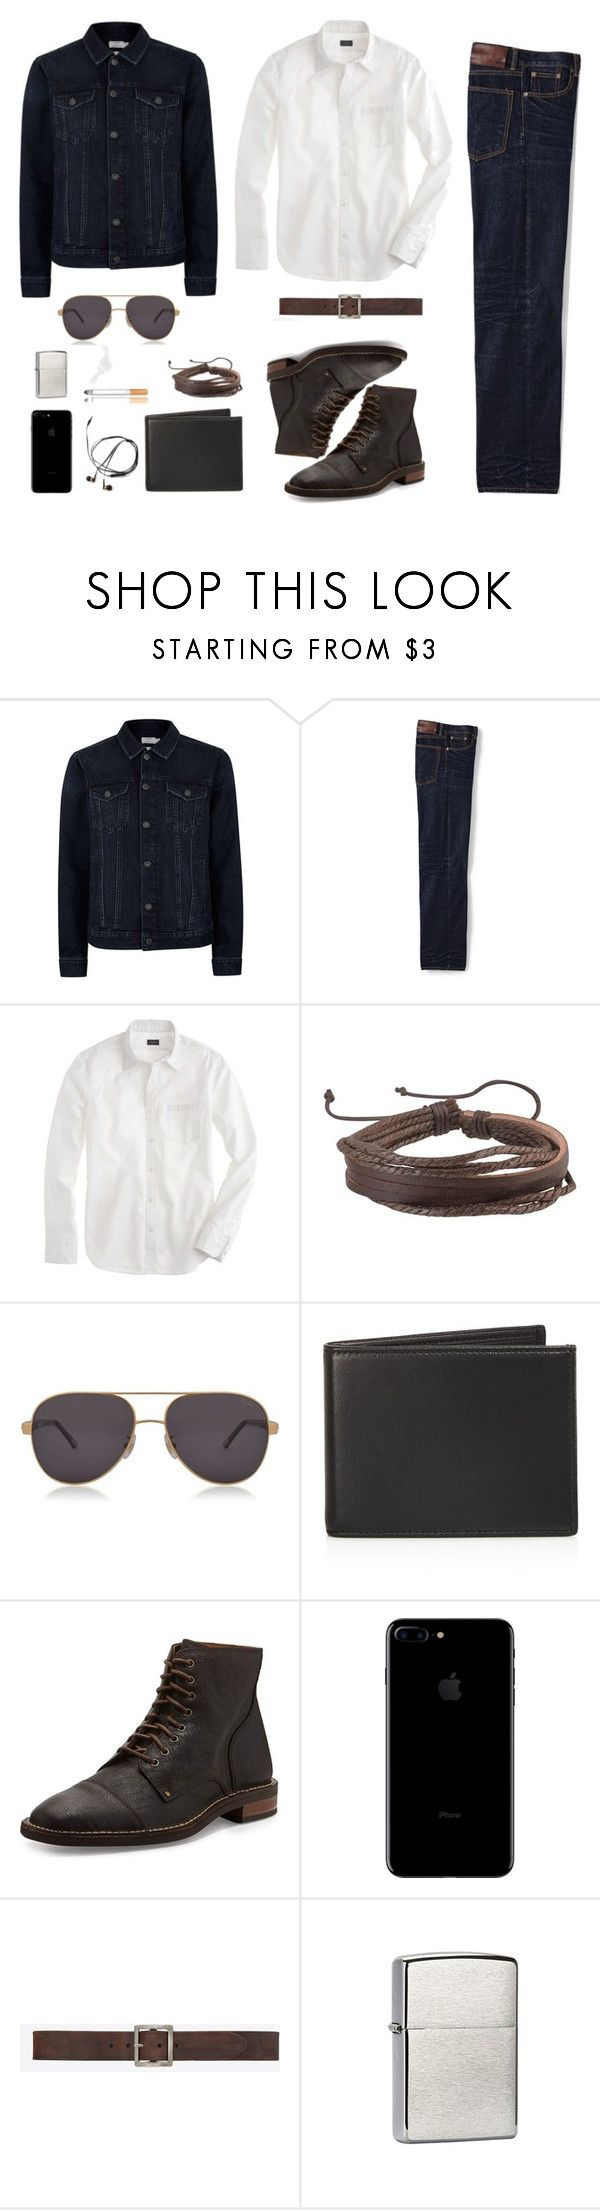 """Take Me to Church"" by bydefault ❤ liked on Polyvore featuring Topman, Lands' End, J.Crew, Zodaca, Chopard, The Men's Store, Cole Haan, Yves Saint Laurent, Zippo and men's fashion"